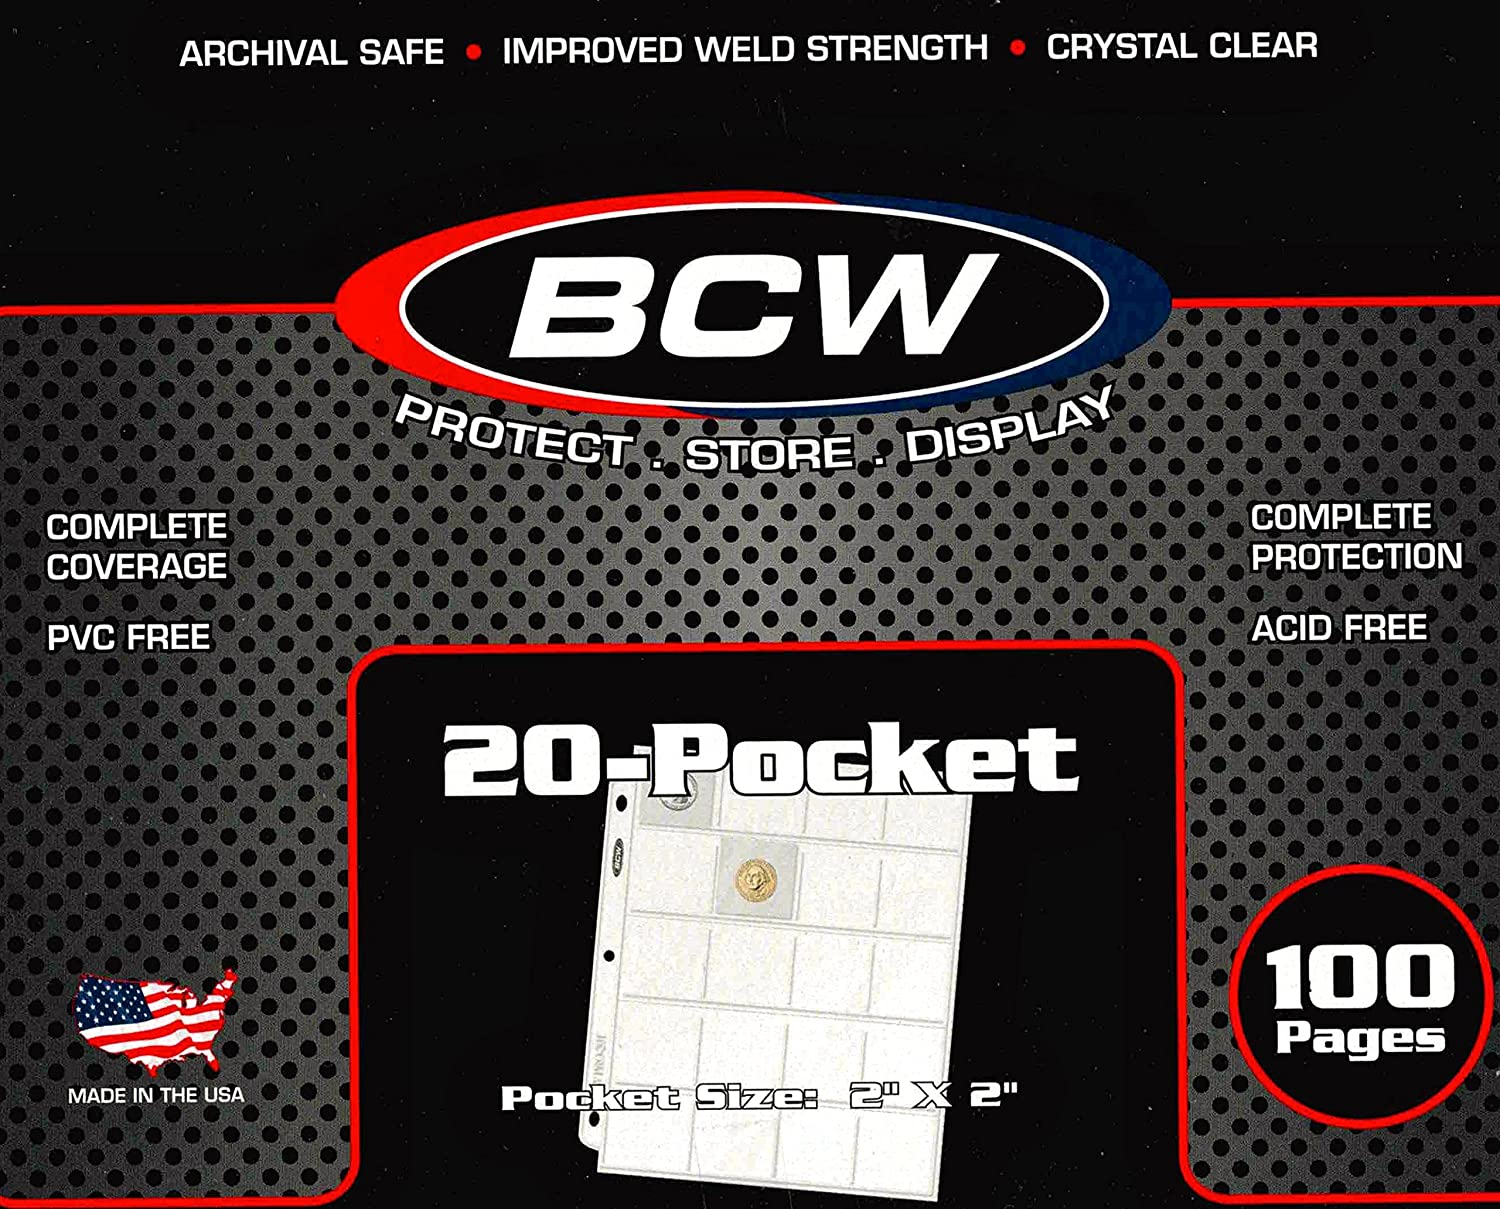 100 BCW Polypropylene 20 Pocket Coin Pages for 2